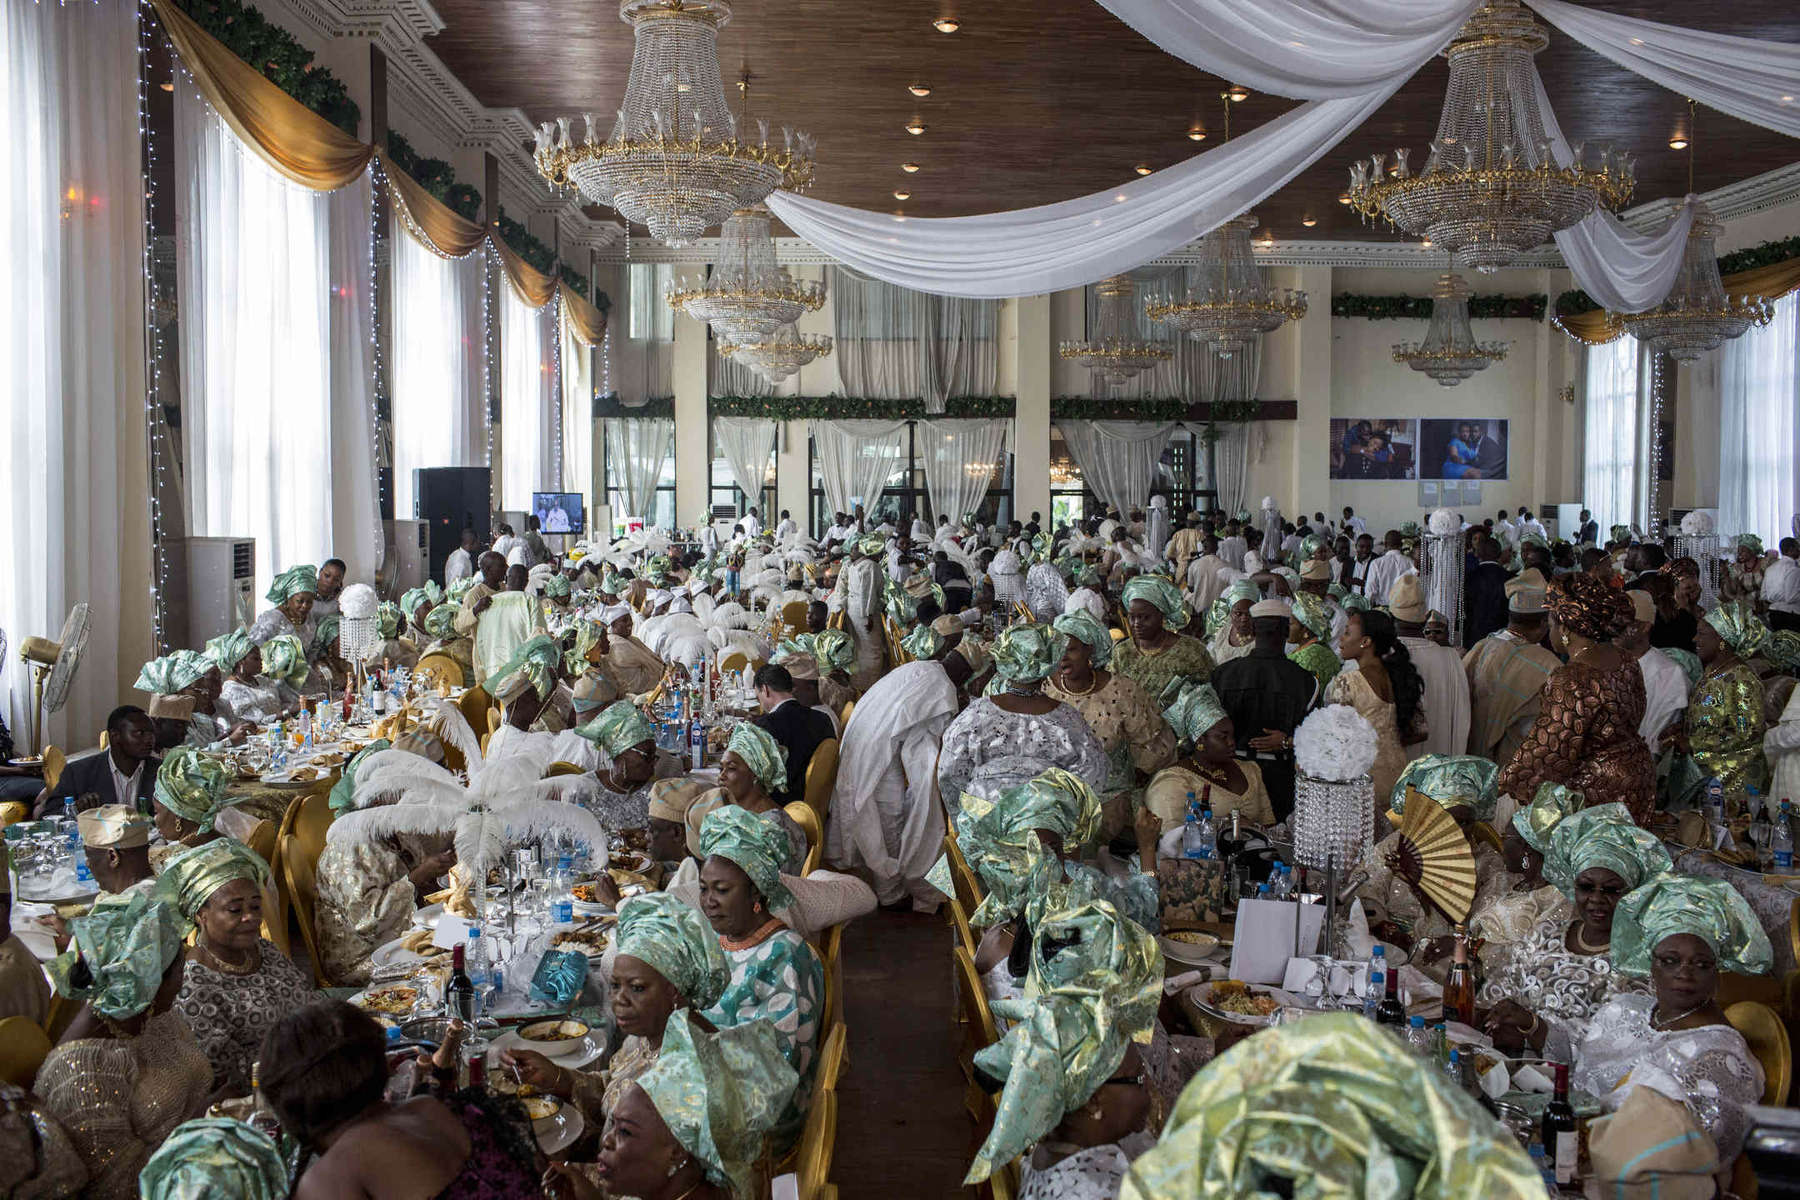 An opulent wedding for nearly a thousand guests was held at the banquet hall of a private housing estate in Lagos, Nigeria. Guests wear matching outfits and hats chosen by the bride's family.